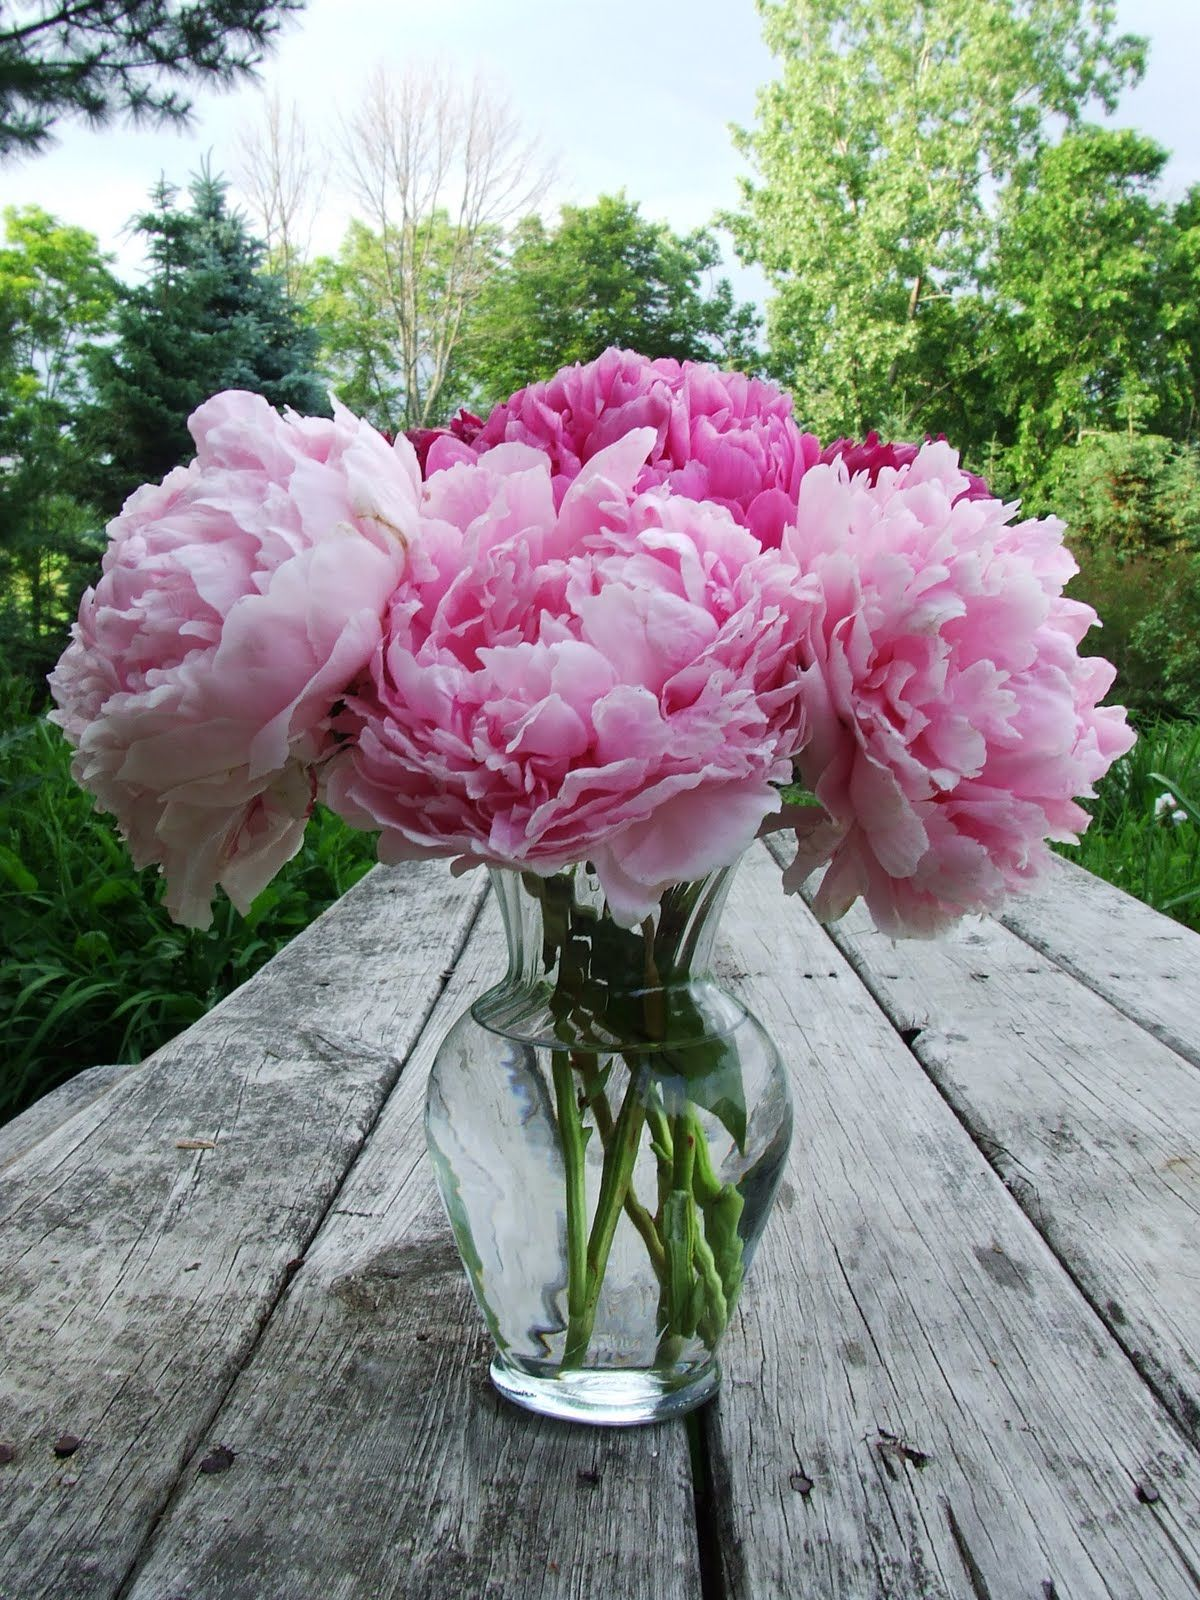 Walked down the stairs this evening and there is my husband, arranging several peonies from his garden in a vase for me :)  What a good guy :)  I got a kiss for each one also <3